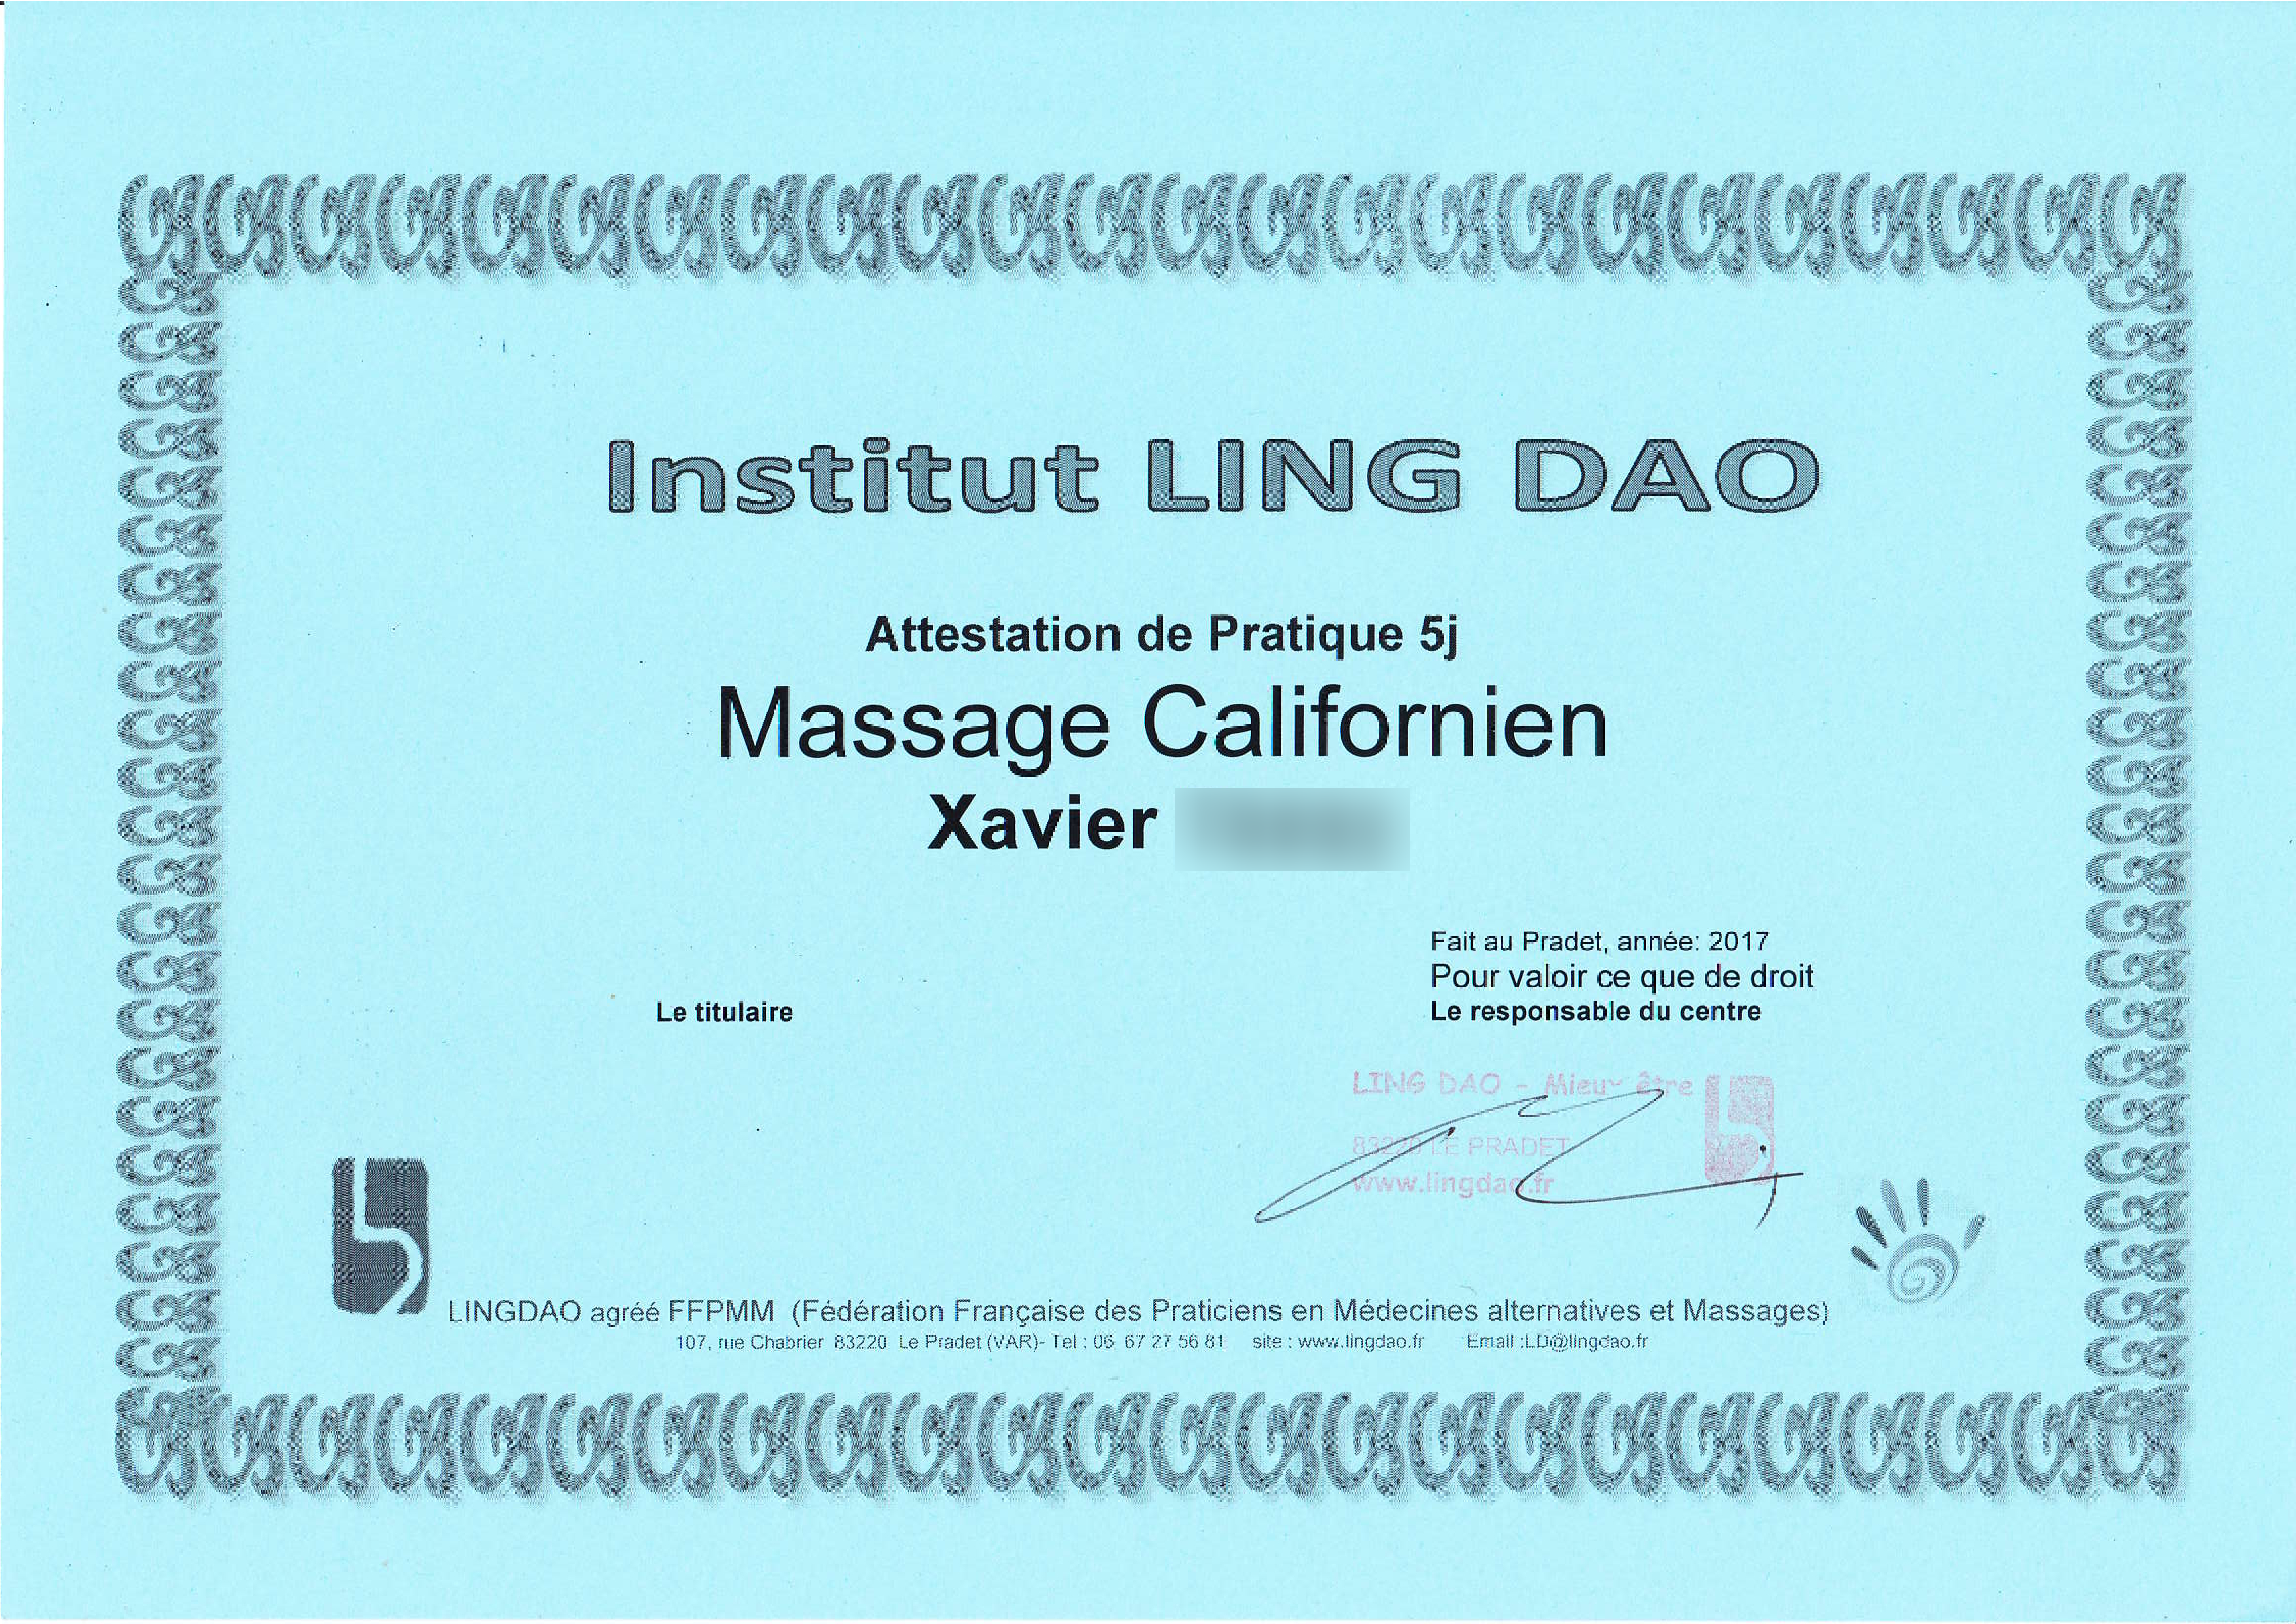 5a3b7b319ed55_2017-07-07 Ling Dao Attestation de pratique massage Californien.pdf